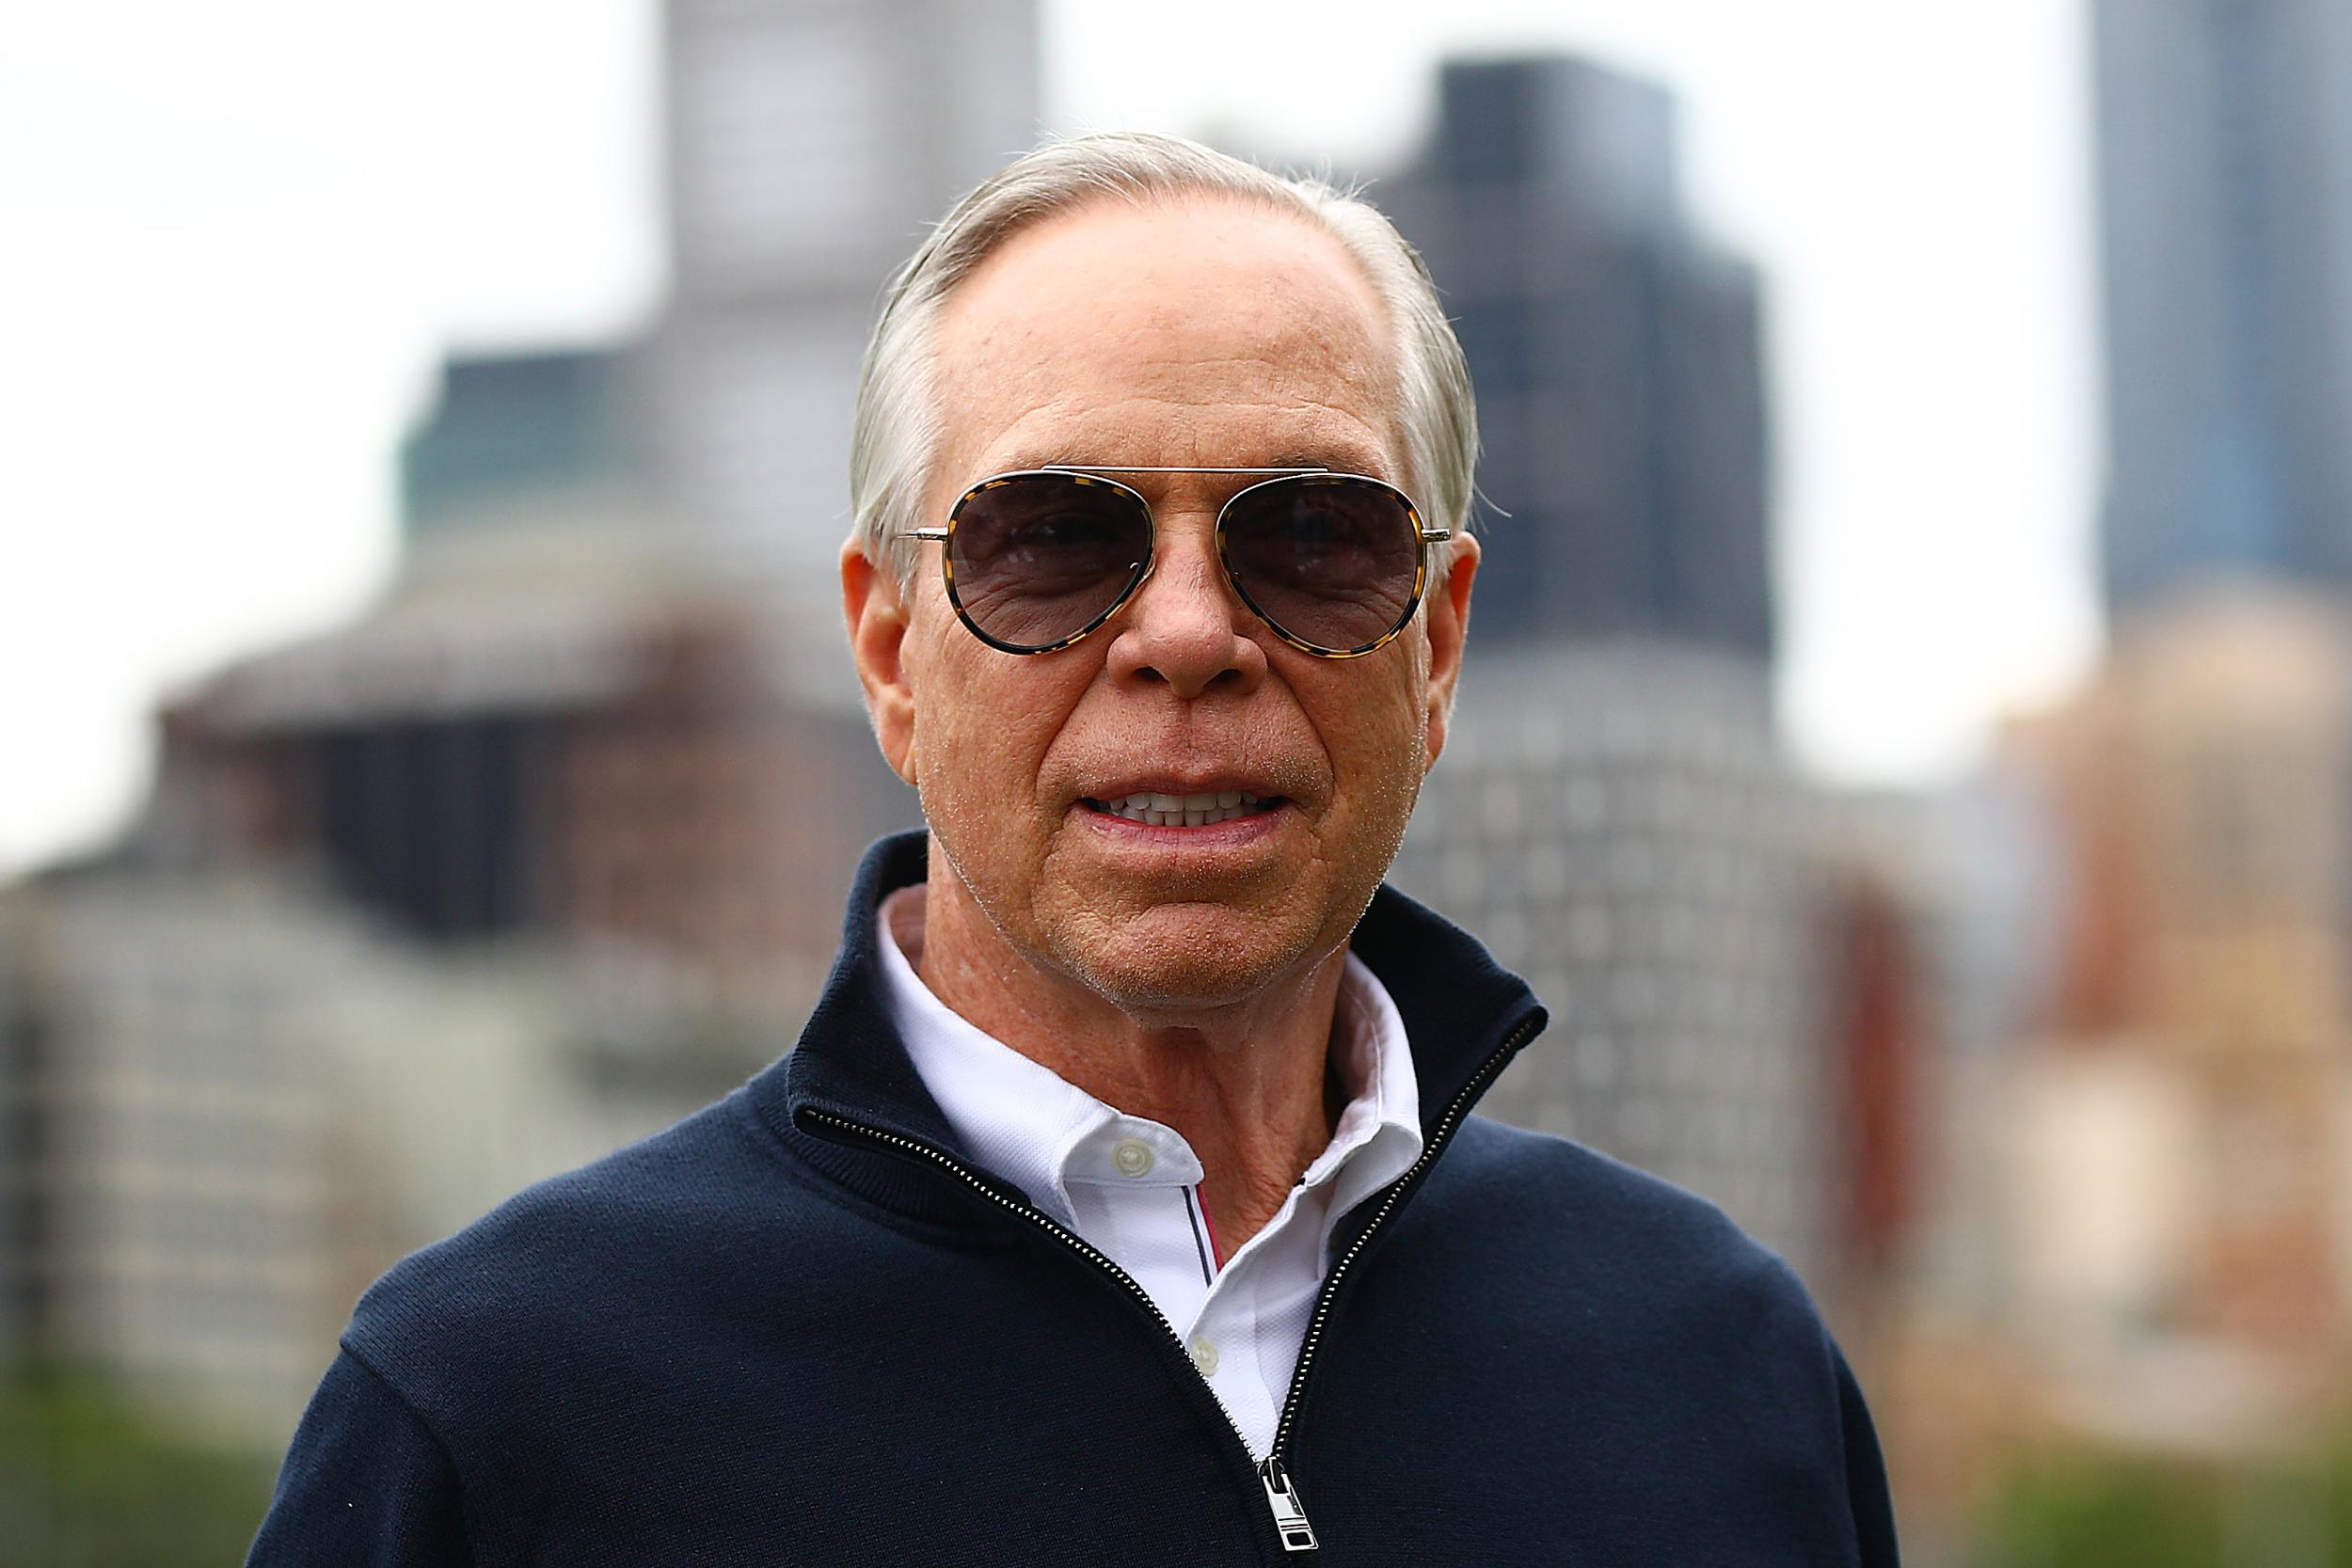 Tommy Hilfiger interview: 'Some businesses are awake and some are not. We are very woke'